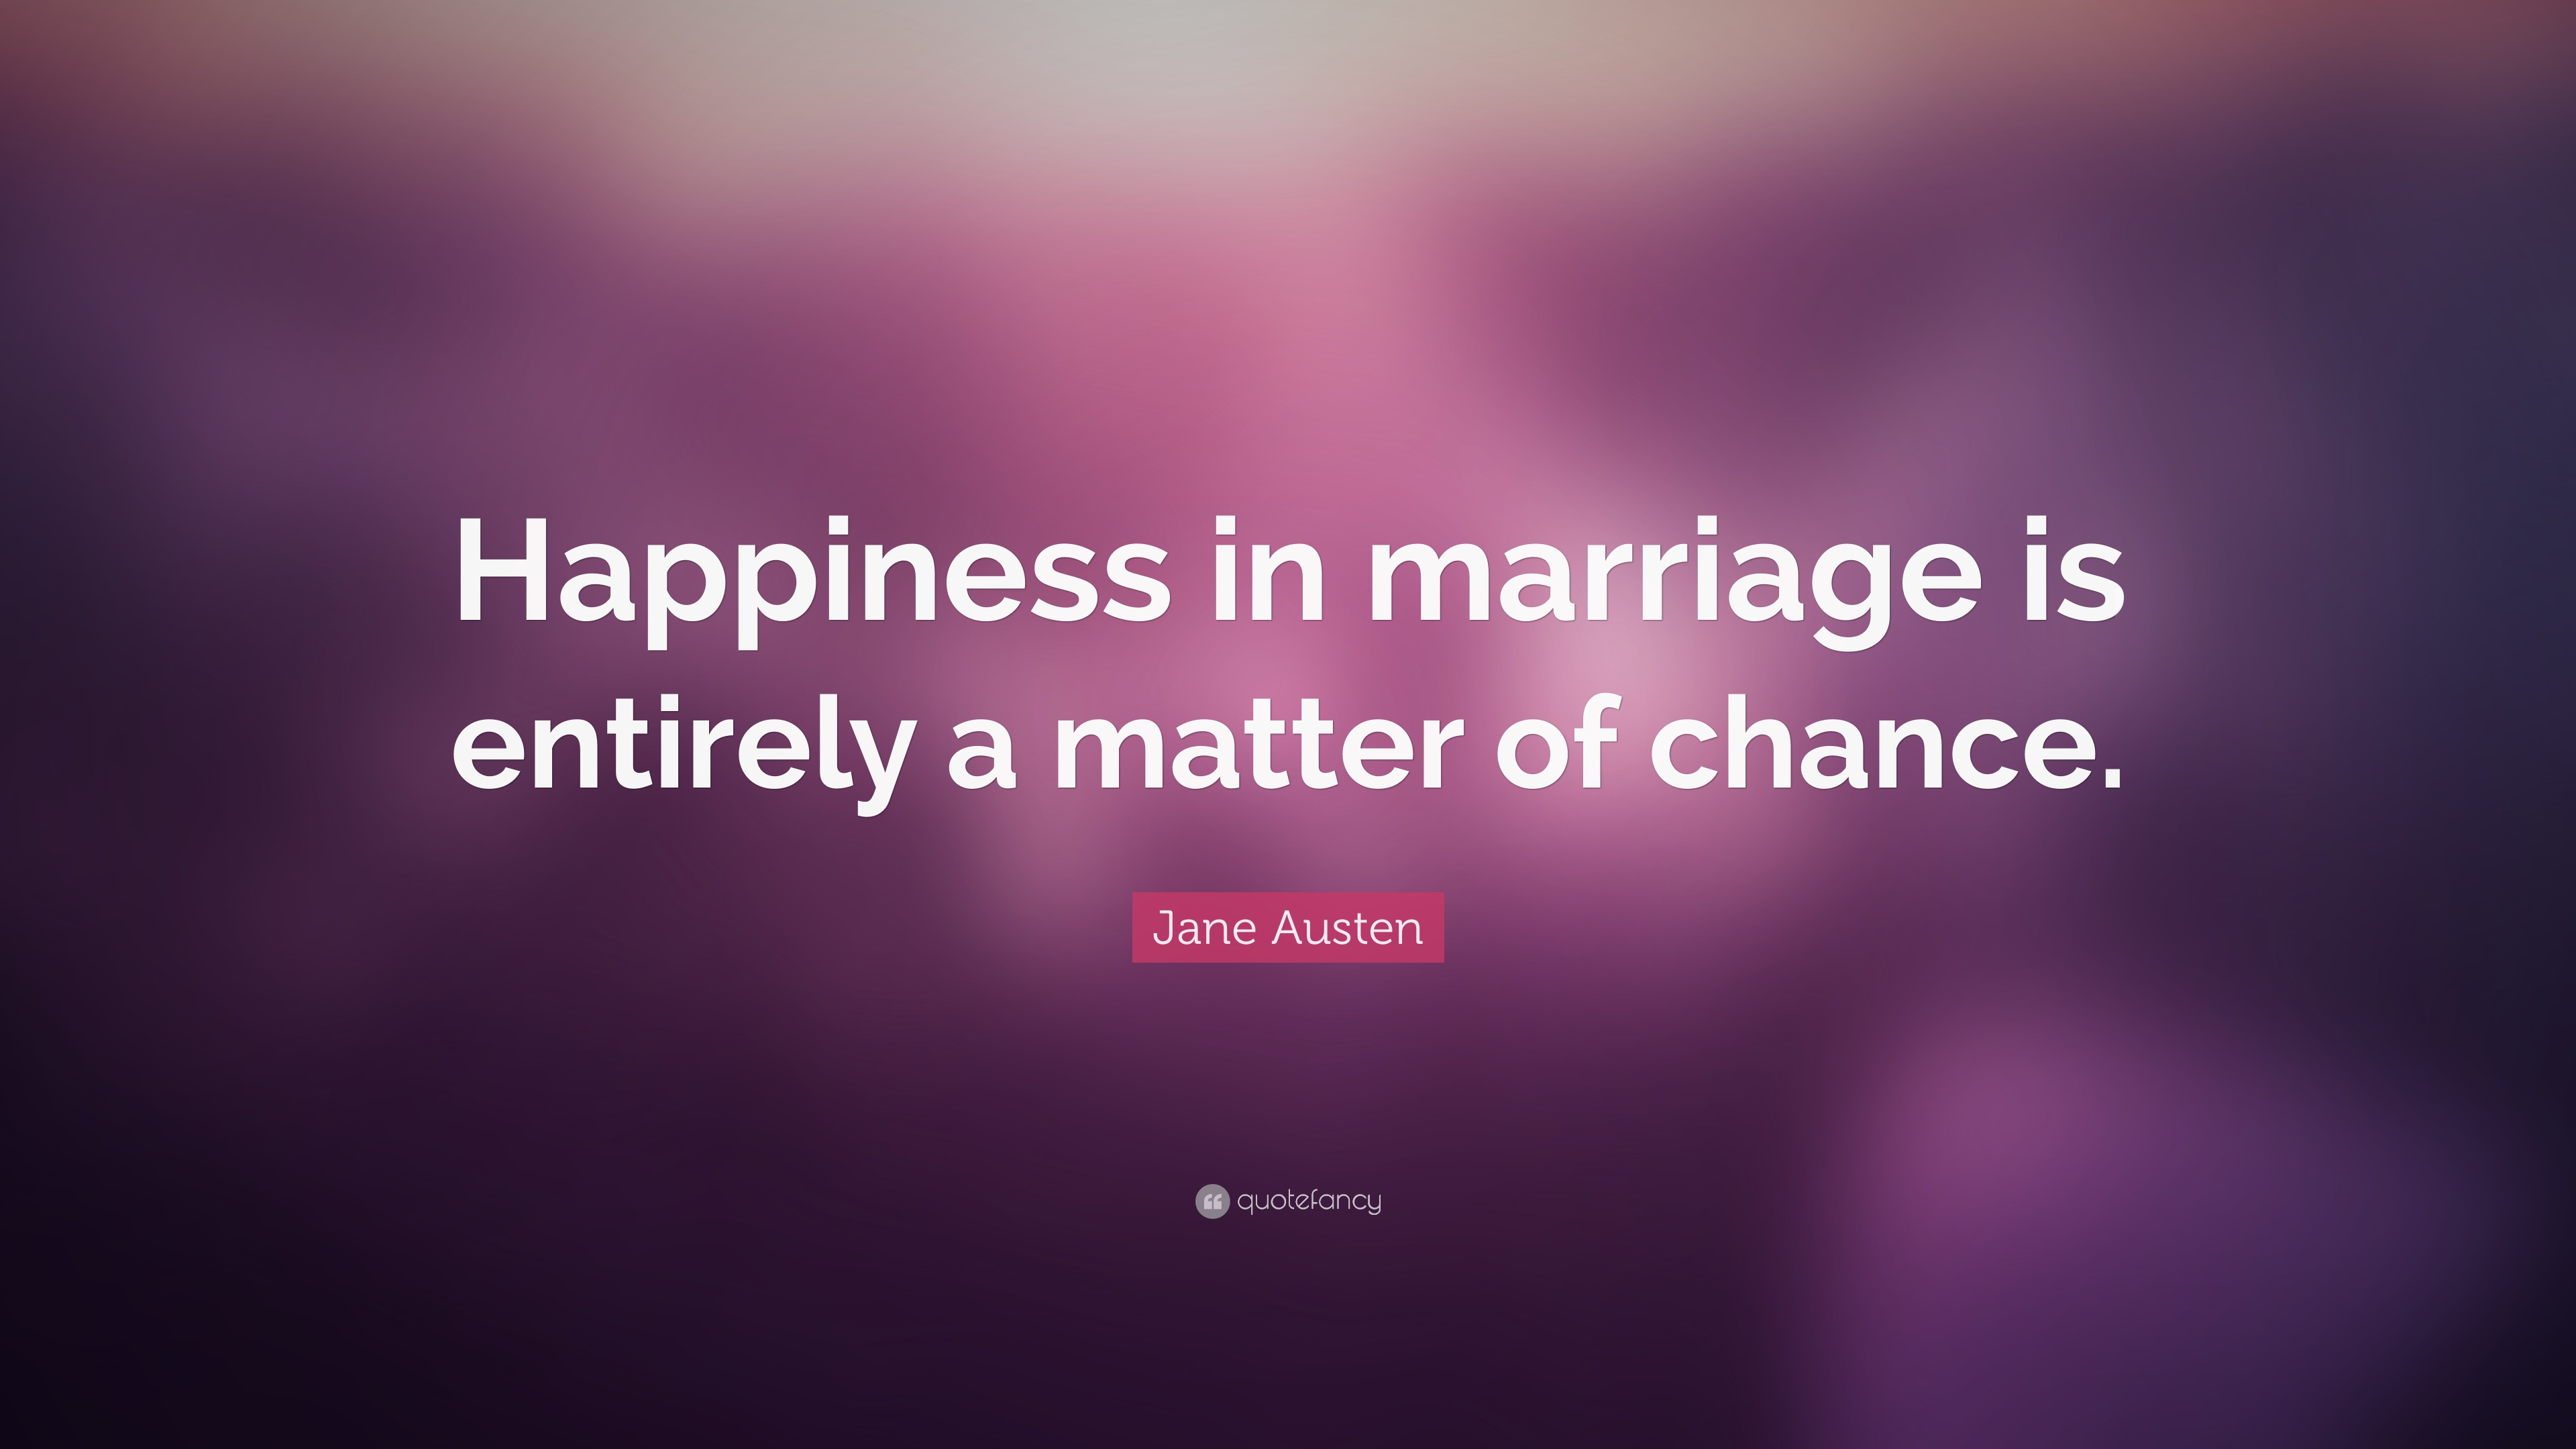 marital happiness essay